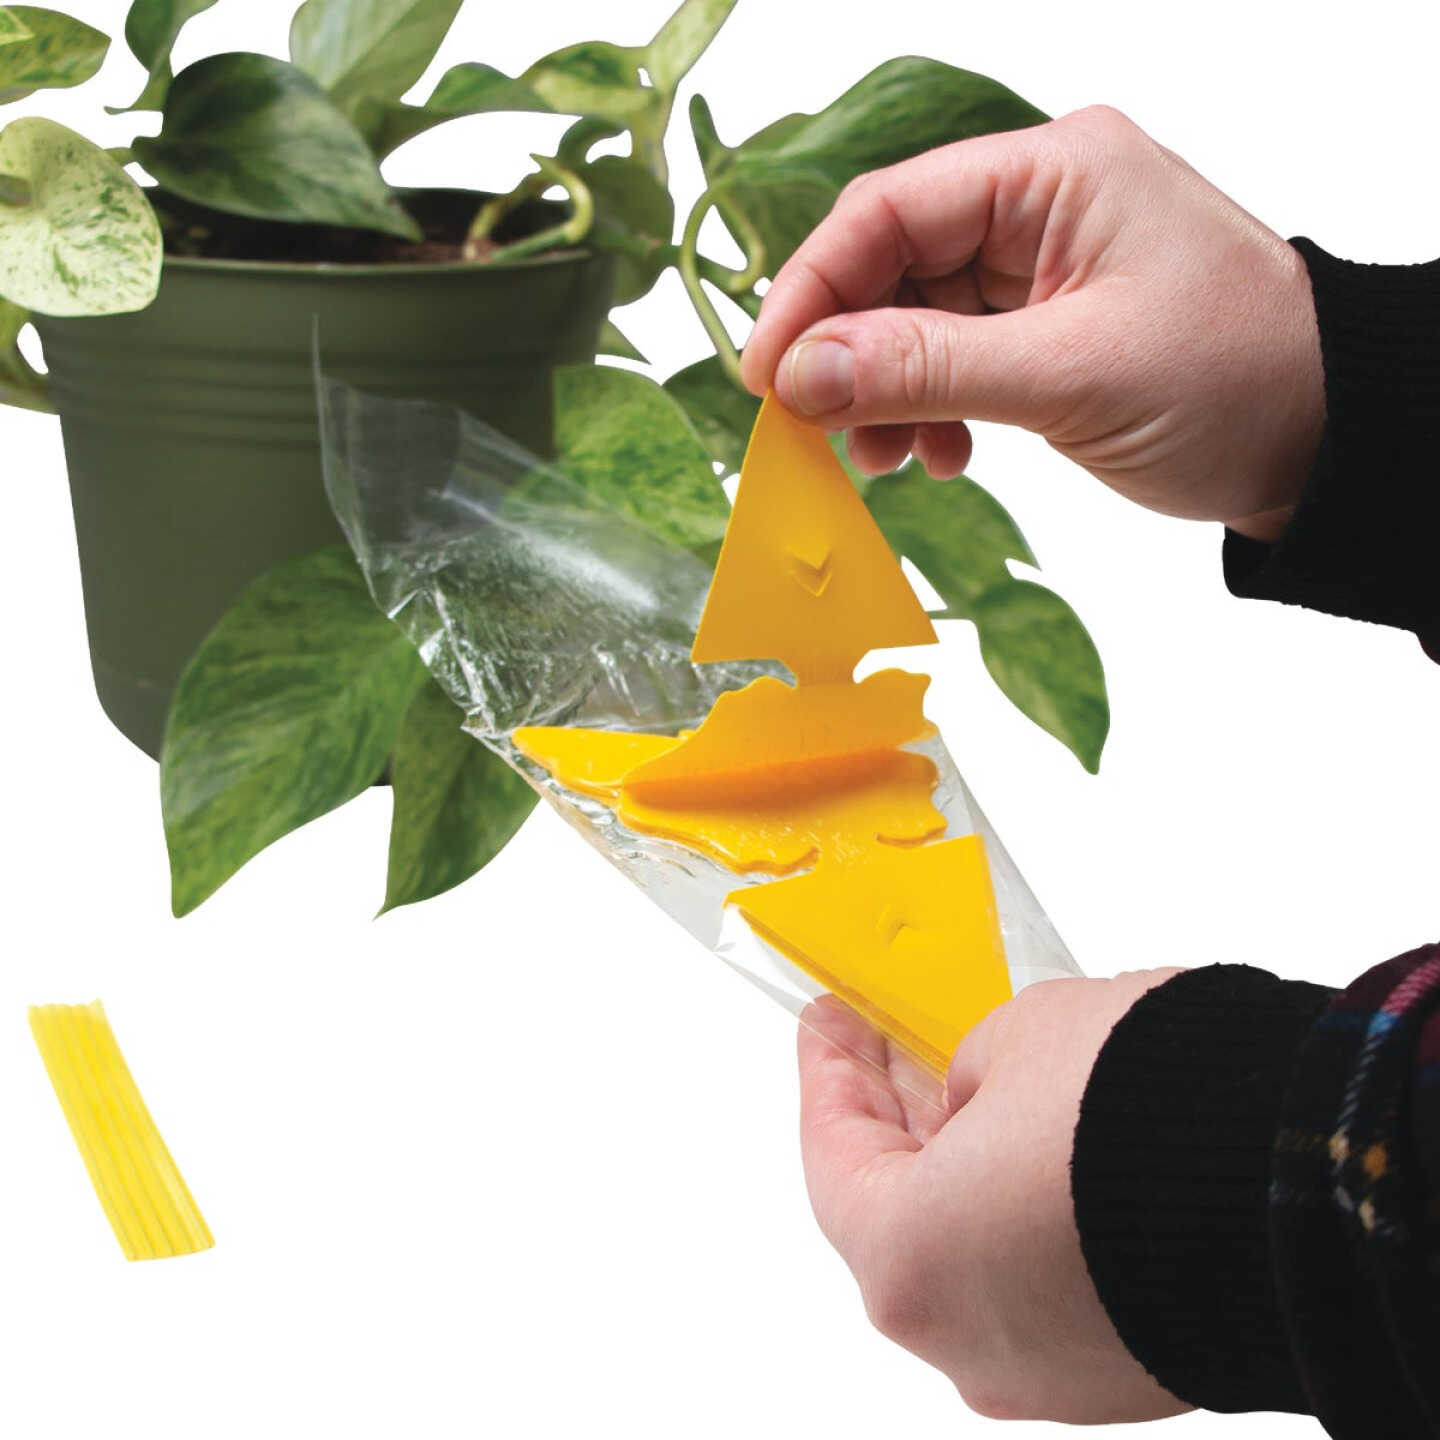 Intruder The Better Bugtrap for Plants Disposable Indoor/Outdoor Insect Trap (10-Pack) Image 3